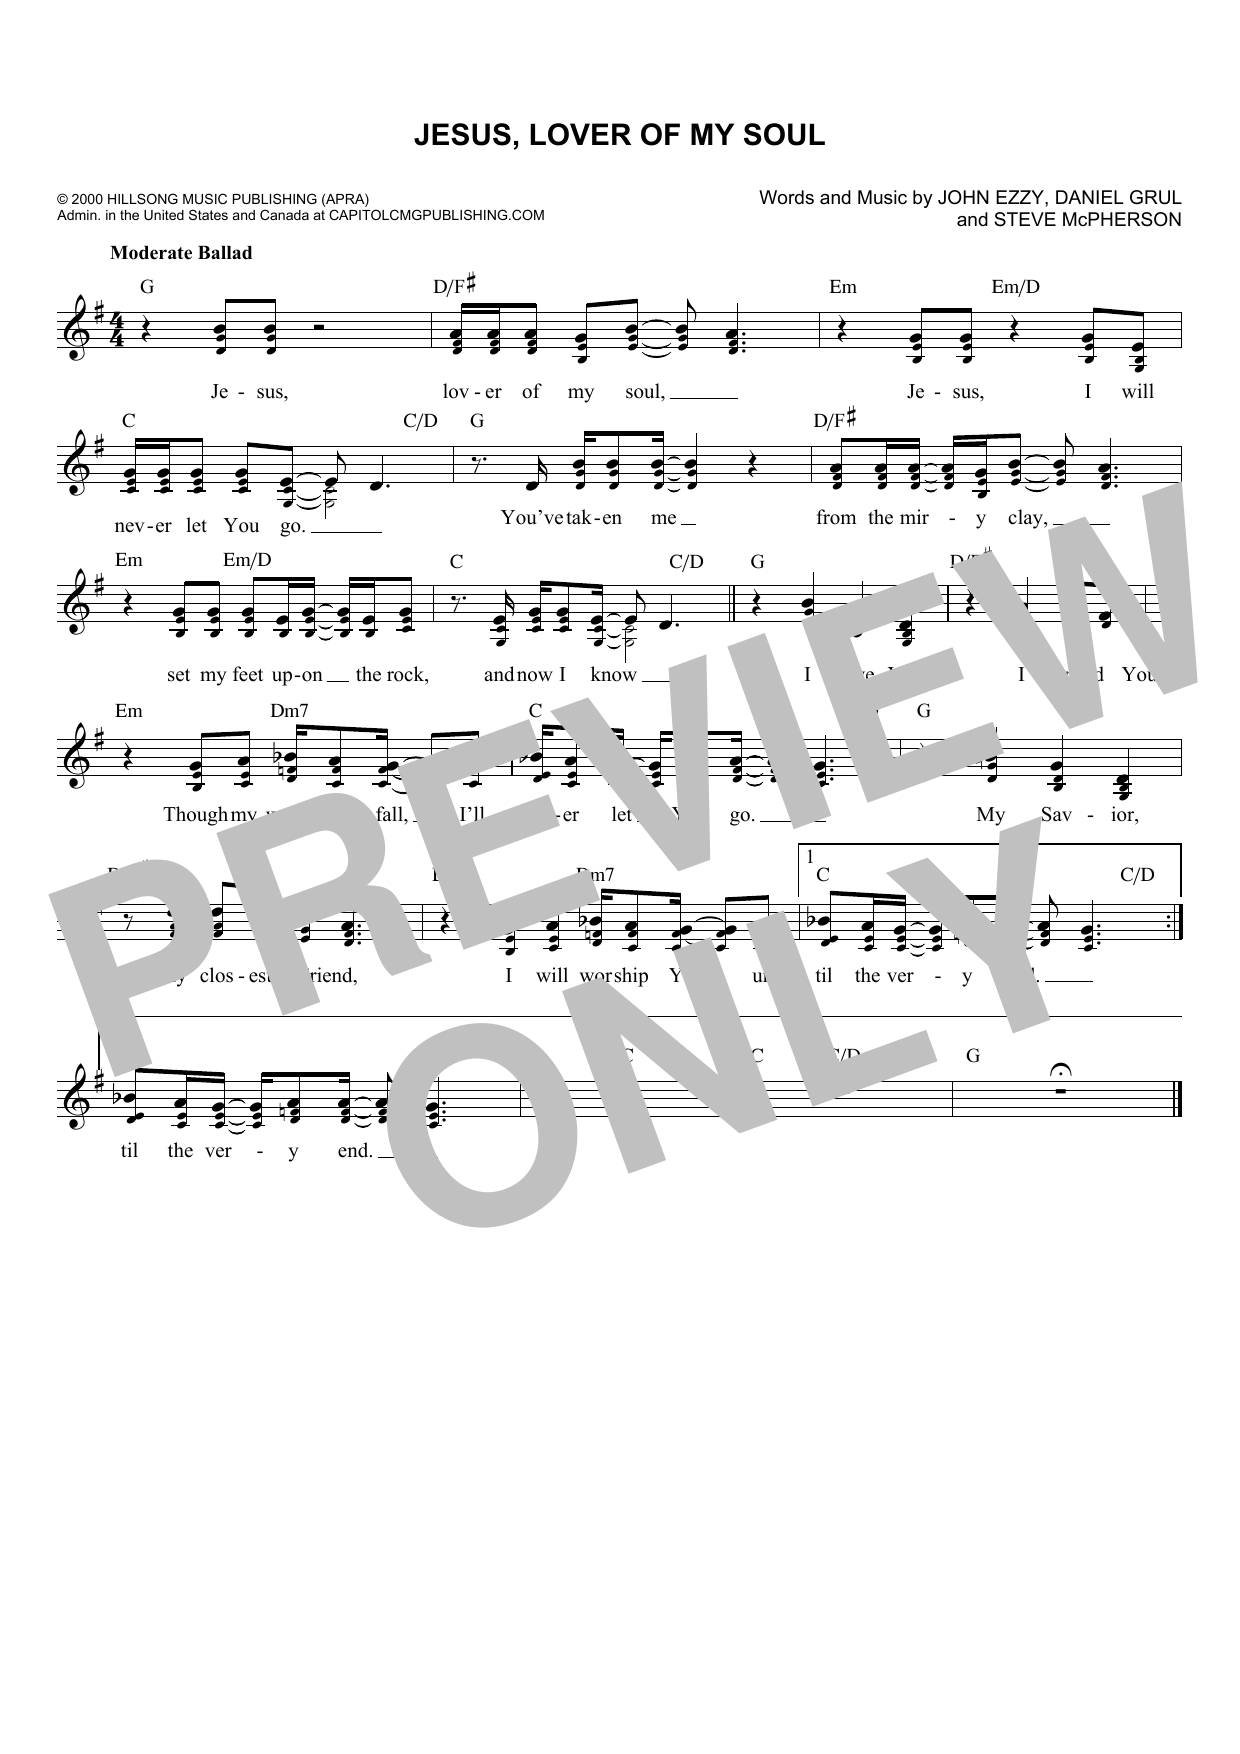 Daniel Grul Jesus, Lover Of My Soul sheet music notes and chords. Download Printable PDF.